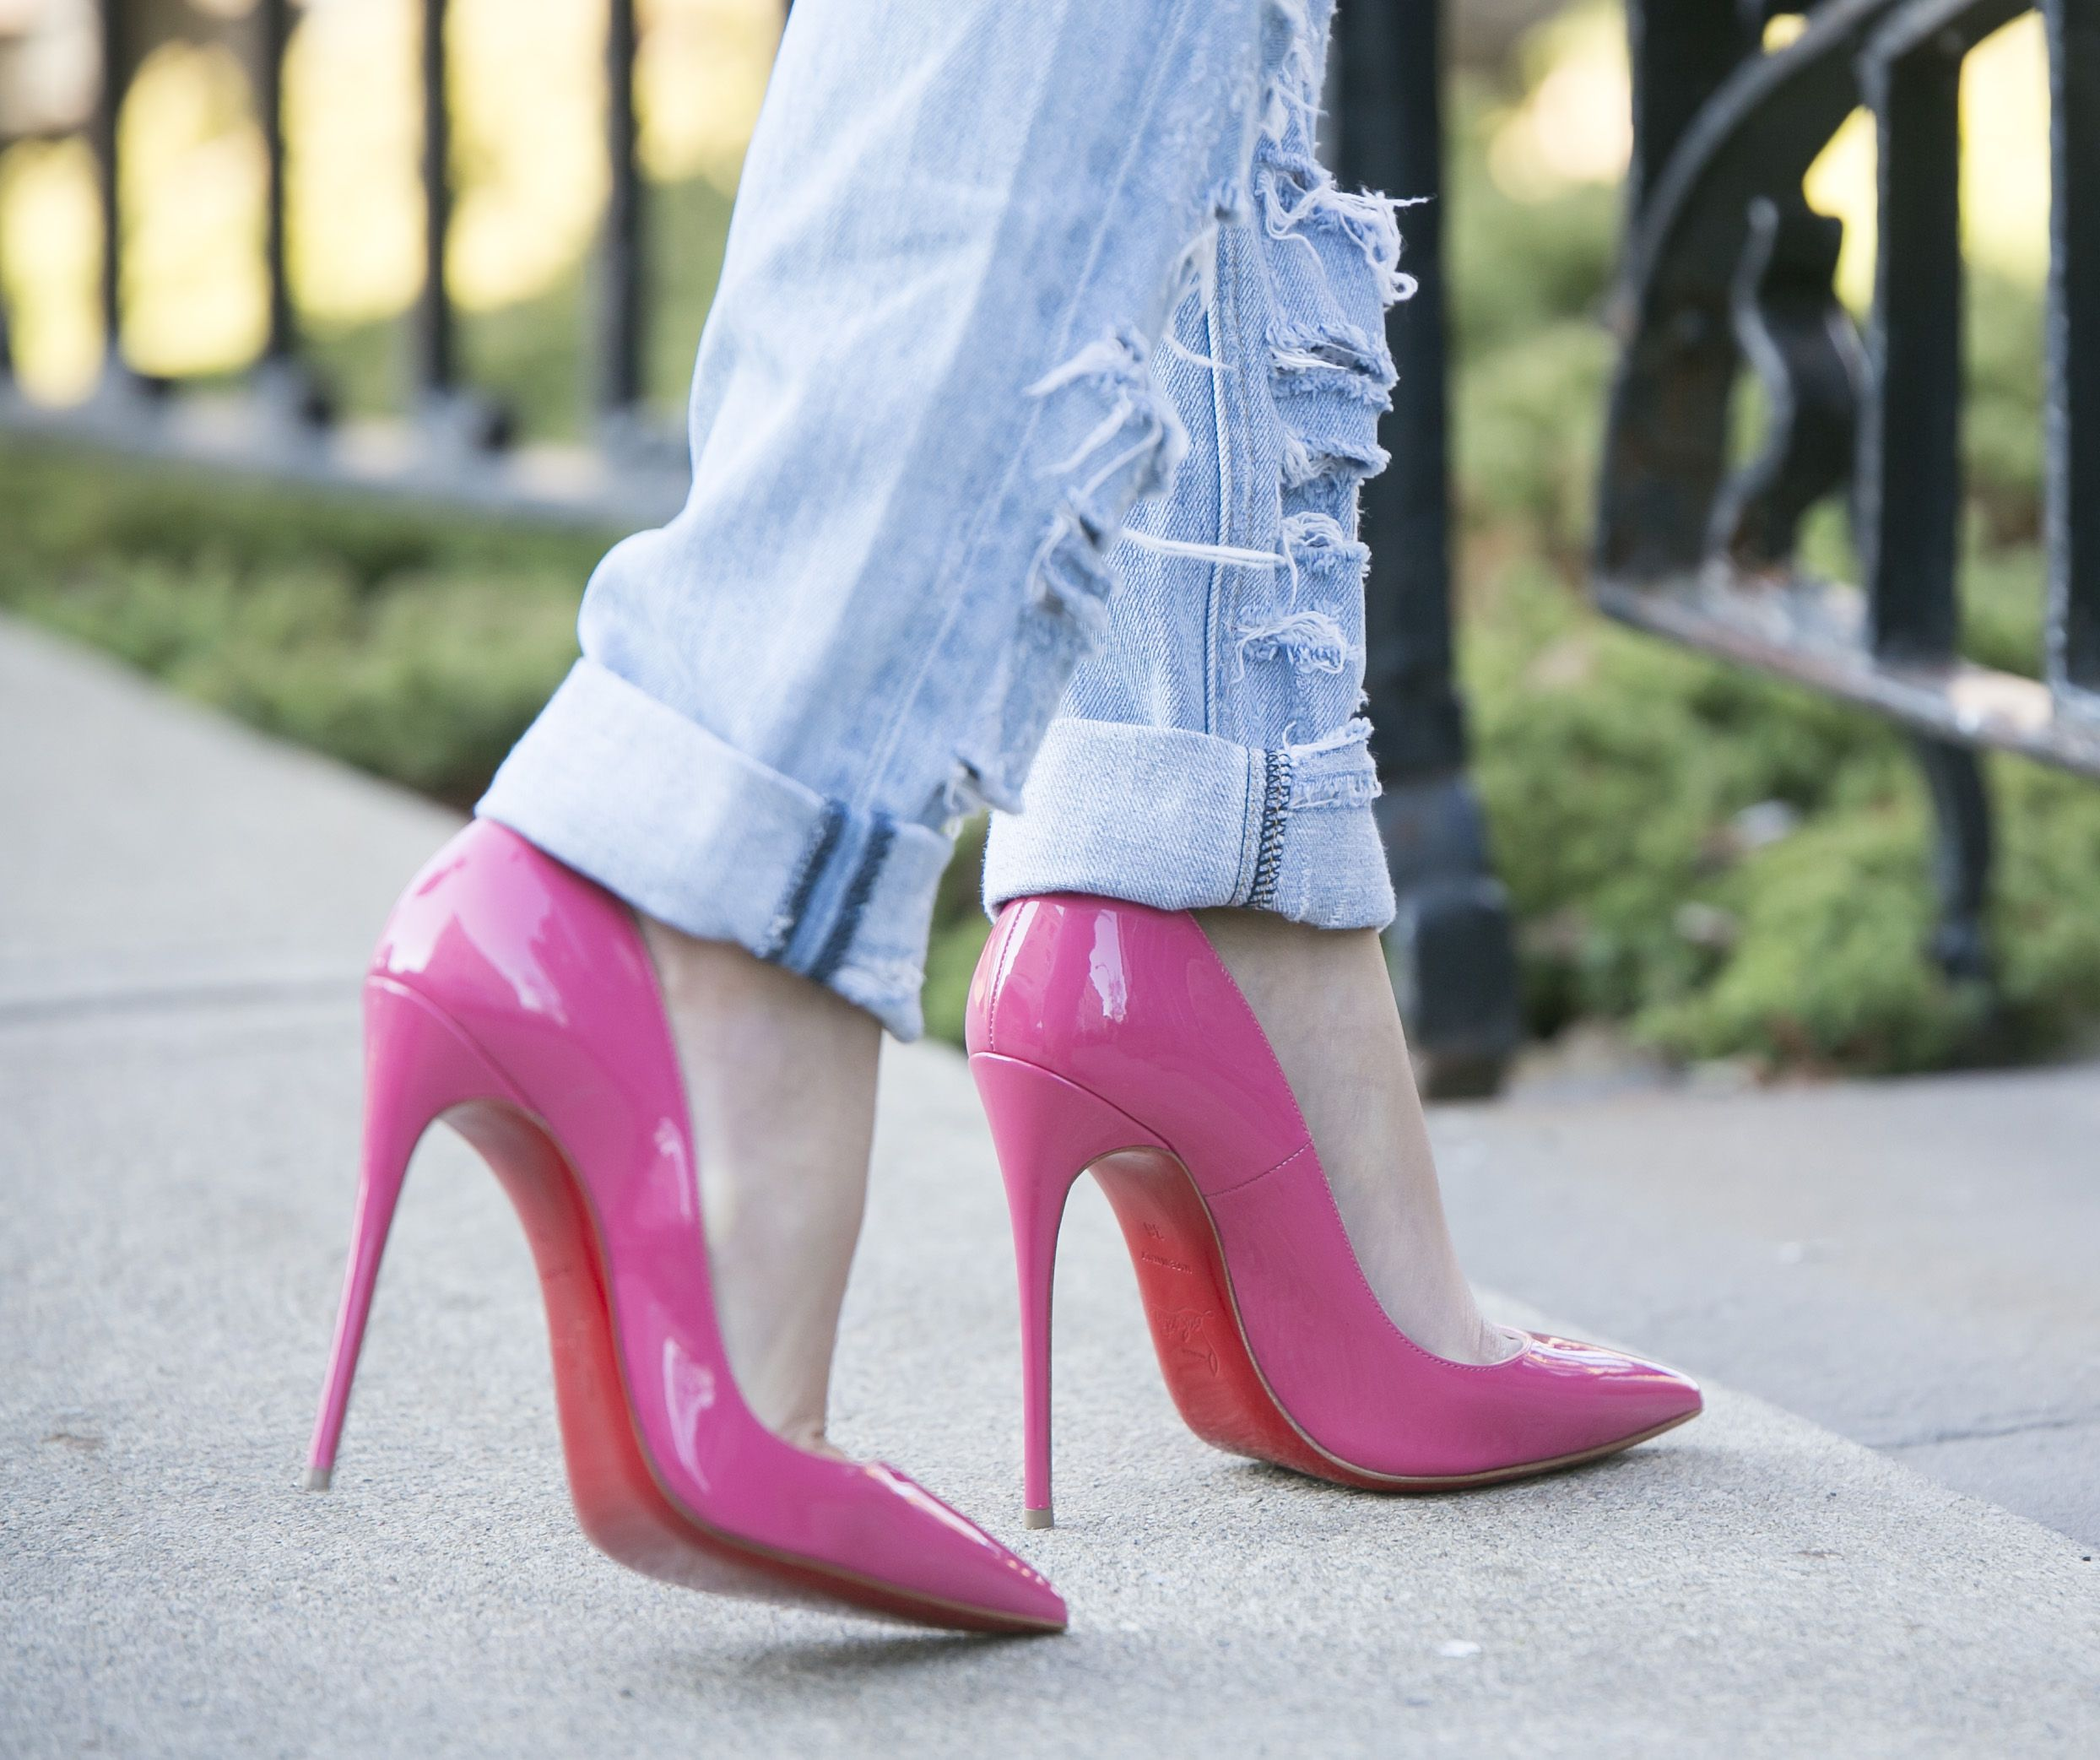 acheter populaire a392b 62fd4 Christian Louboutin pink so kate pumps @louboutinworld ...